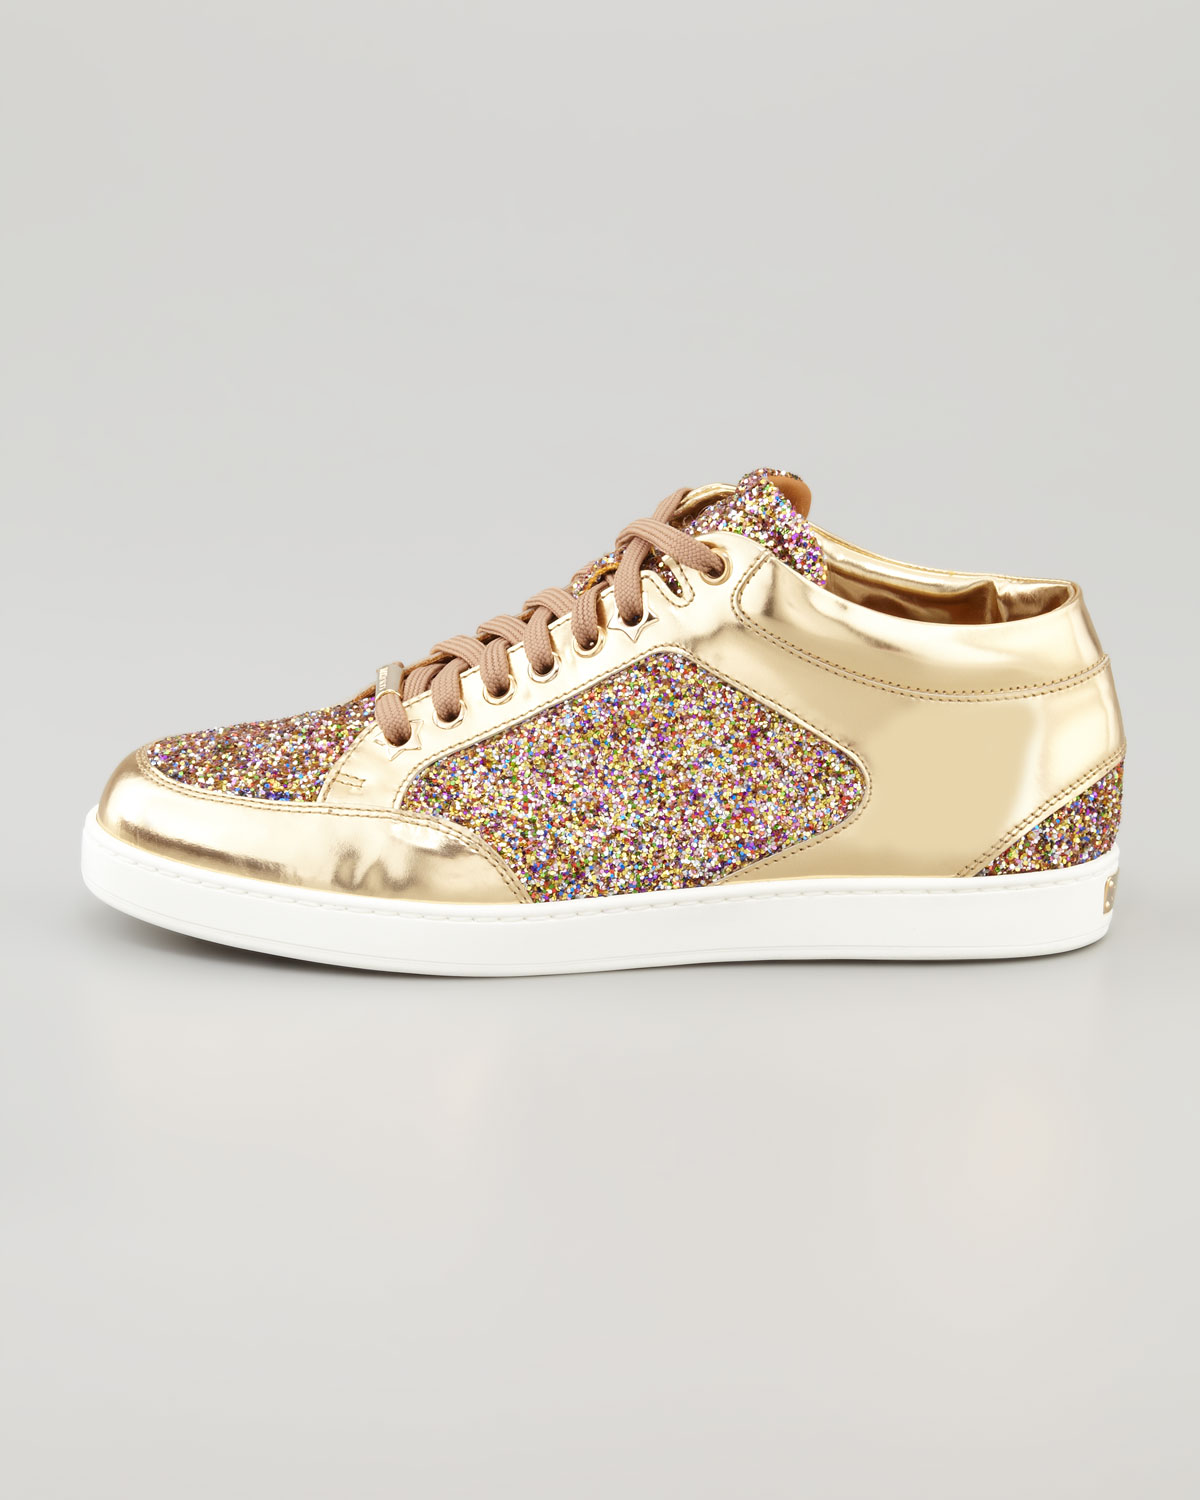 5656287422ec Gallery. Previously sold at: Neiman Marcus · Women's Jimmy Choo Glitter  Shoes Women's Jimmy Choo Miami Sneakers